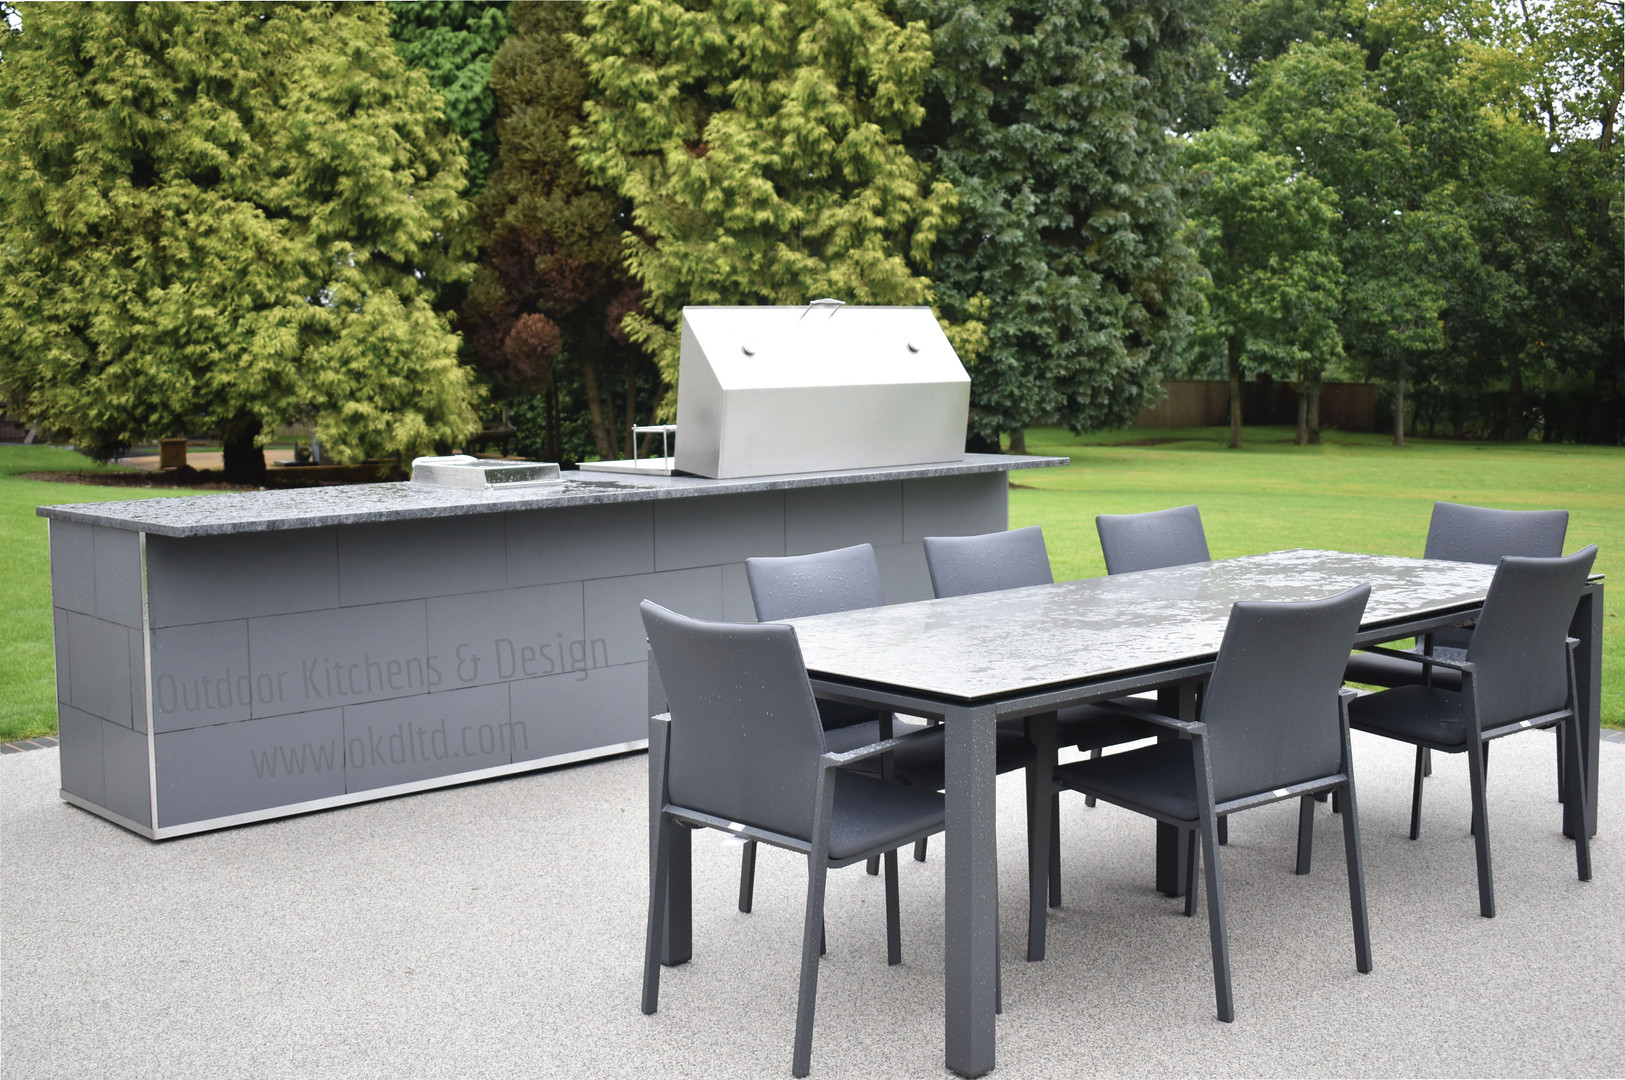 Bespoke Outdoor Kitchens